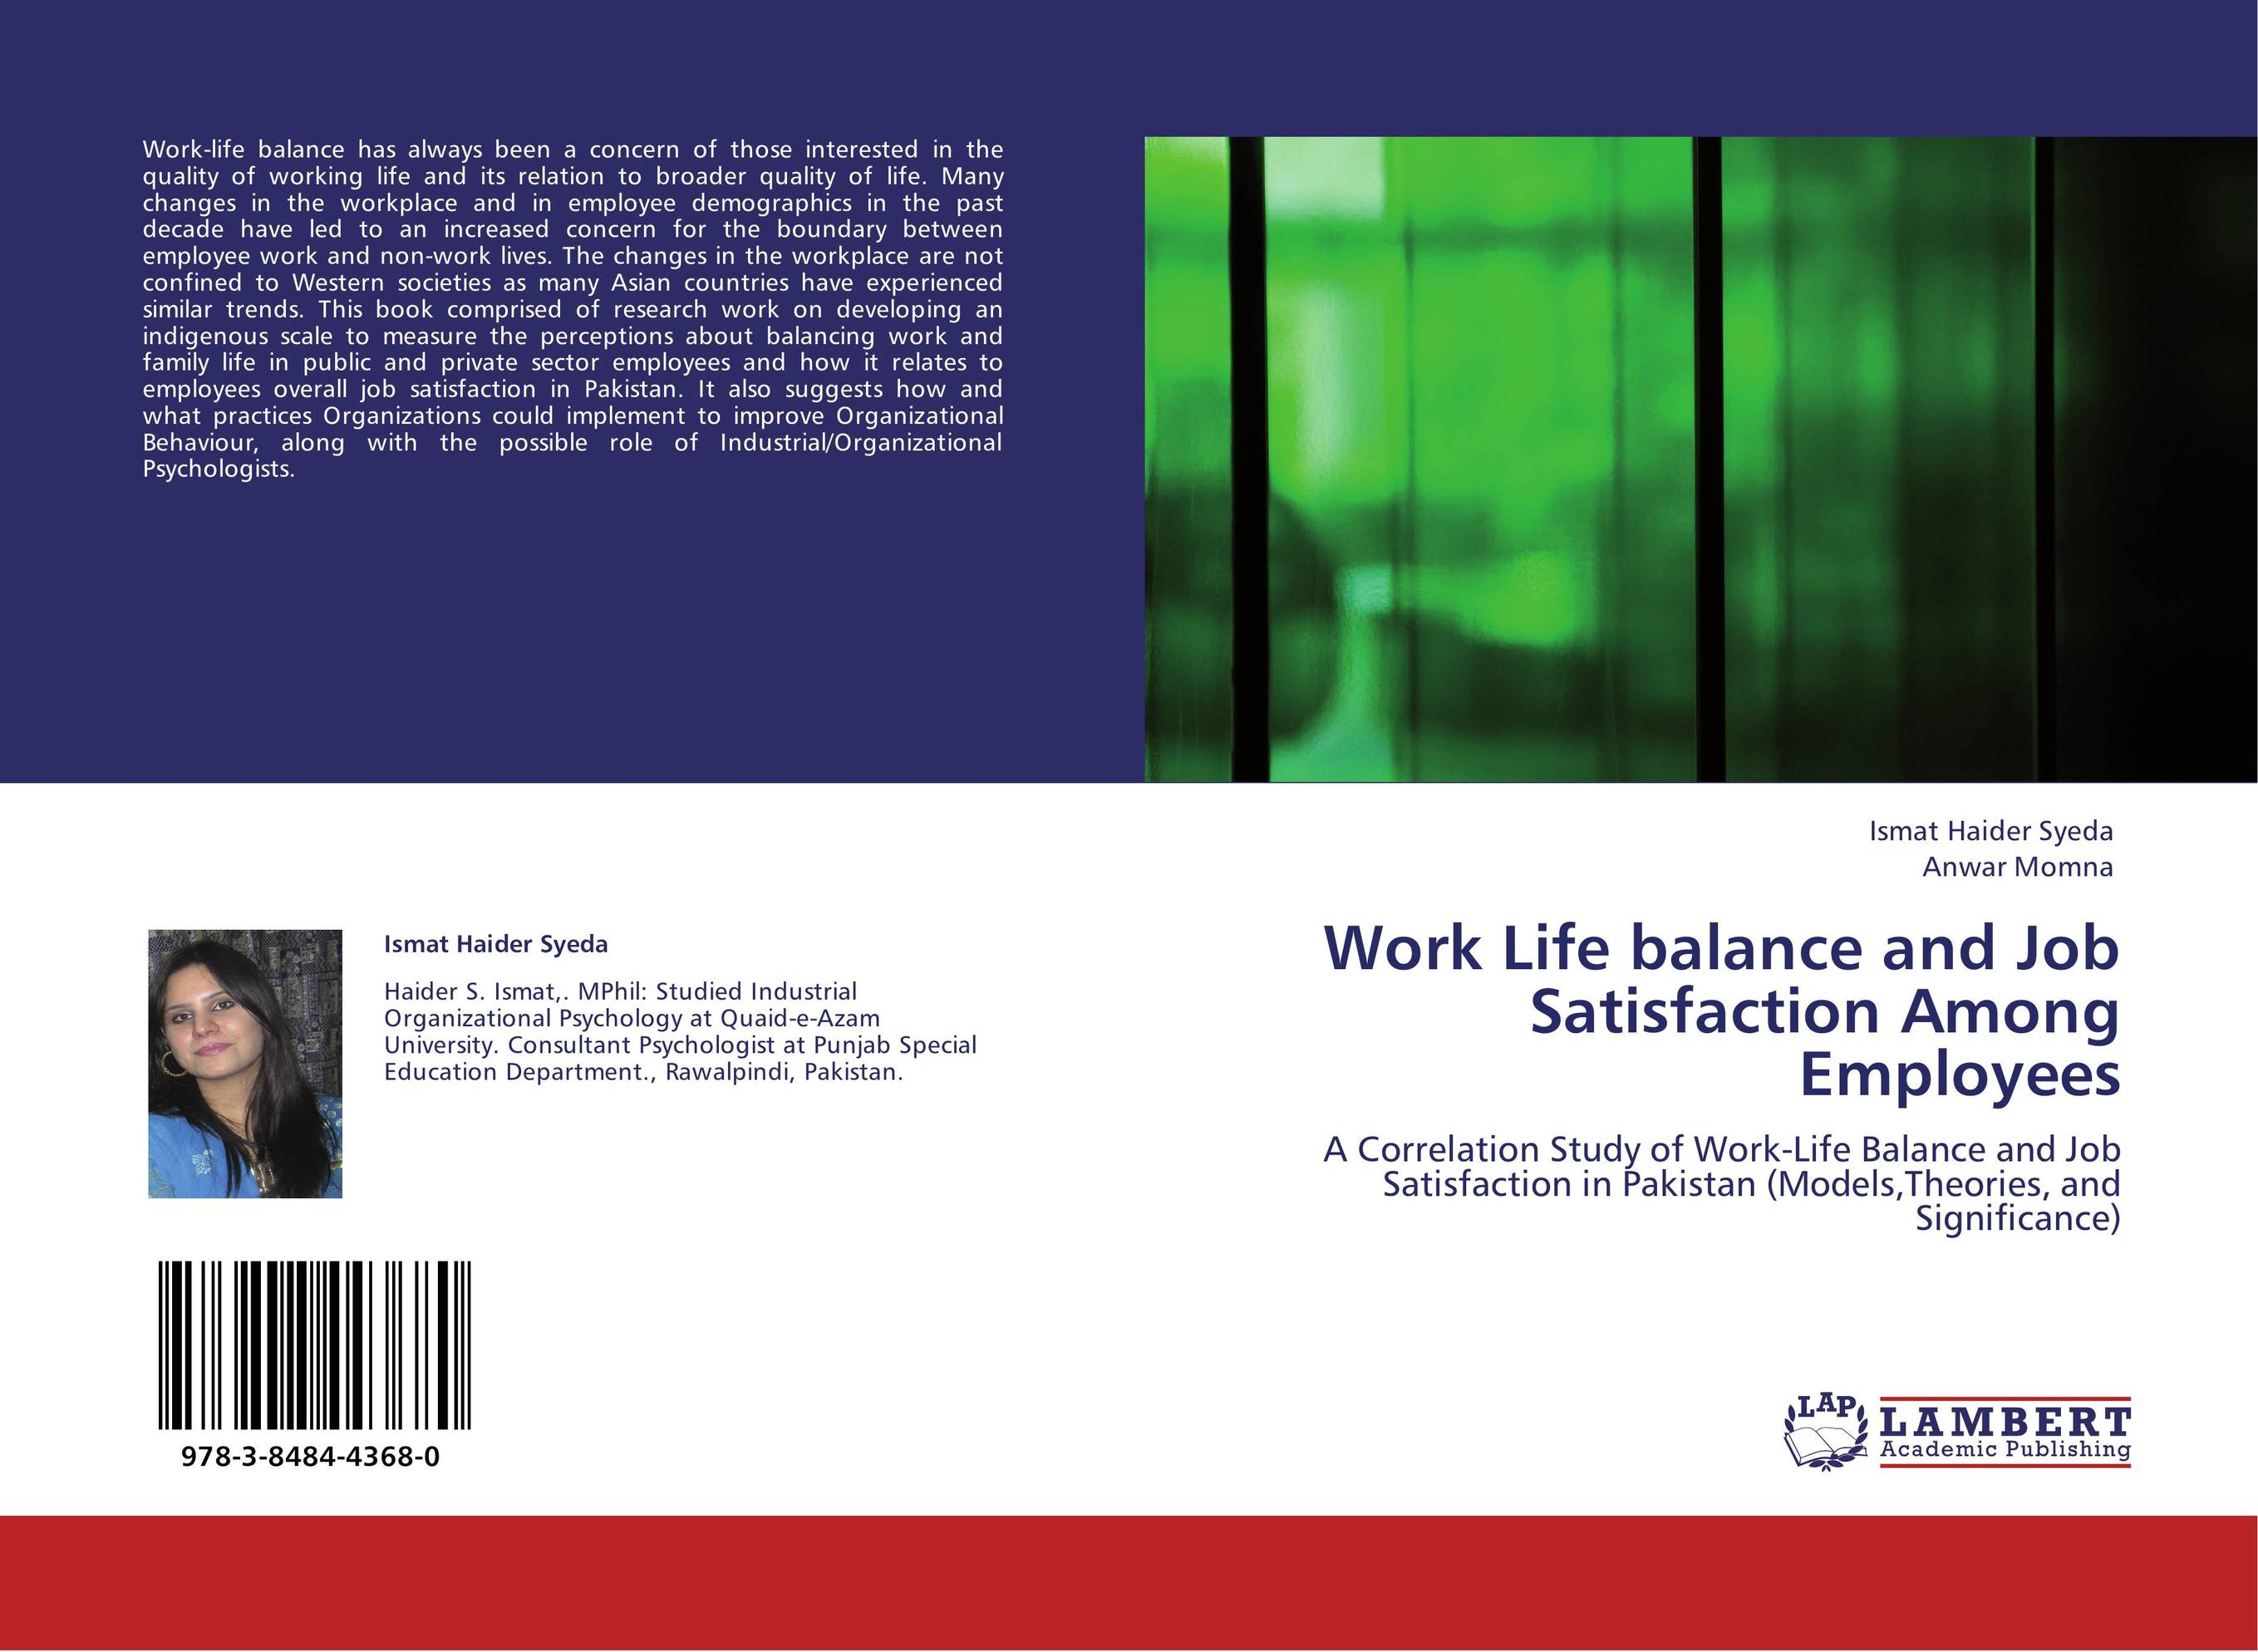 work life balance by women employees social work essay Individual essay: work-life balance in today's work environment a better balance between work and life is increasingly desired by workers desire for a better work-life balance has become one of the growing concerns in contemporary society (wood and de menezes (2010, p1575.